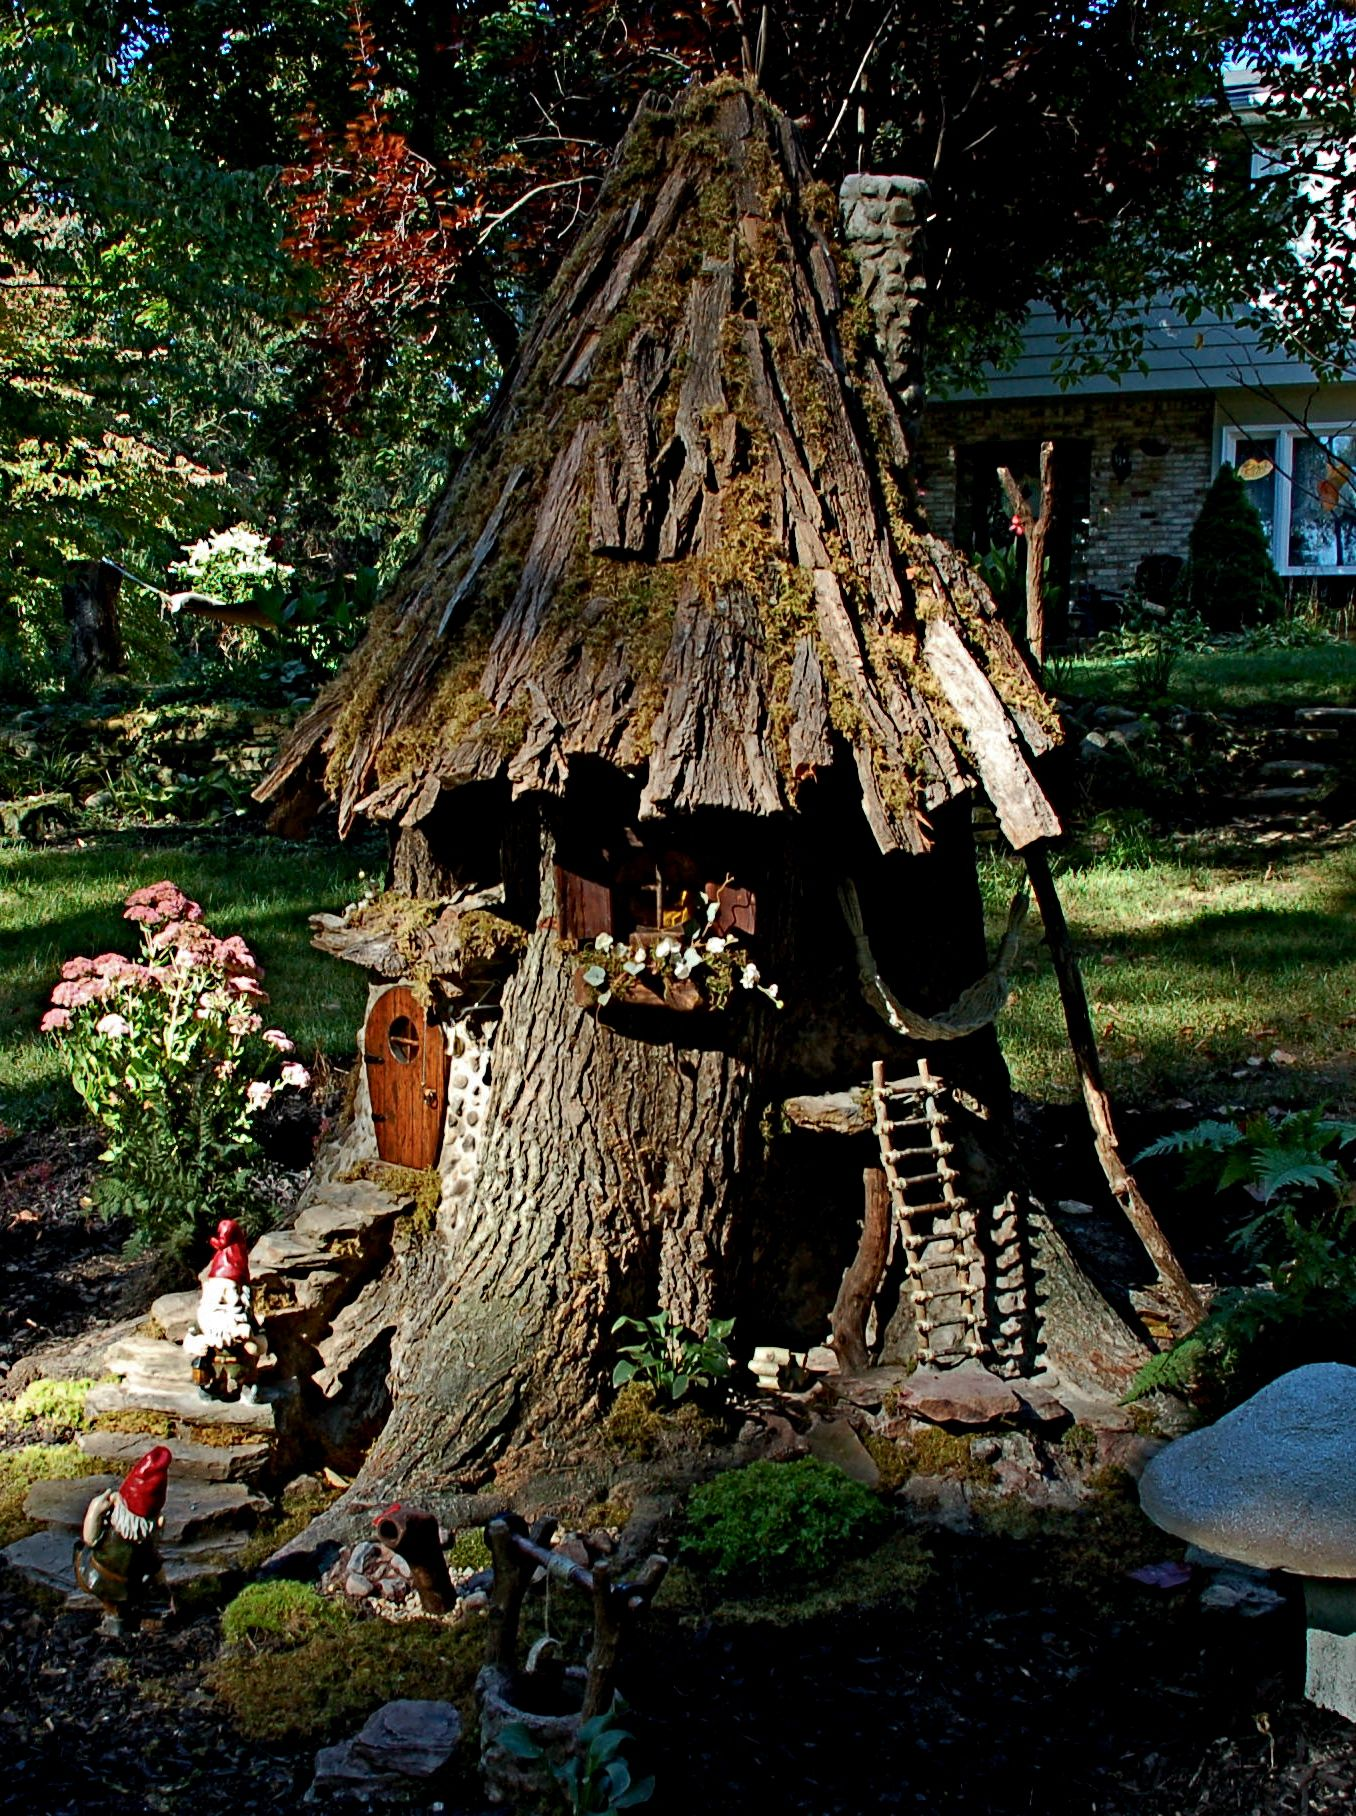 Gnome In Garden: 7 Foot Gnome House From Old Tree Trunk